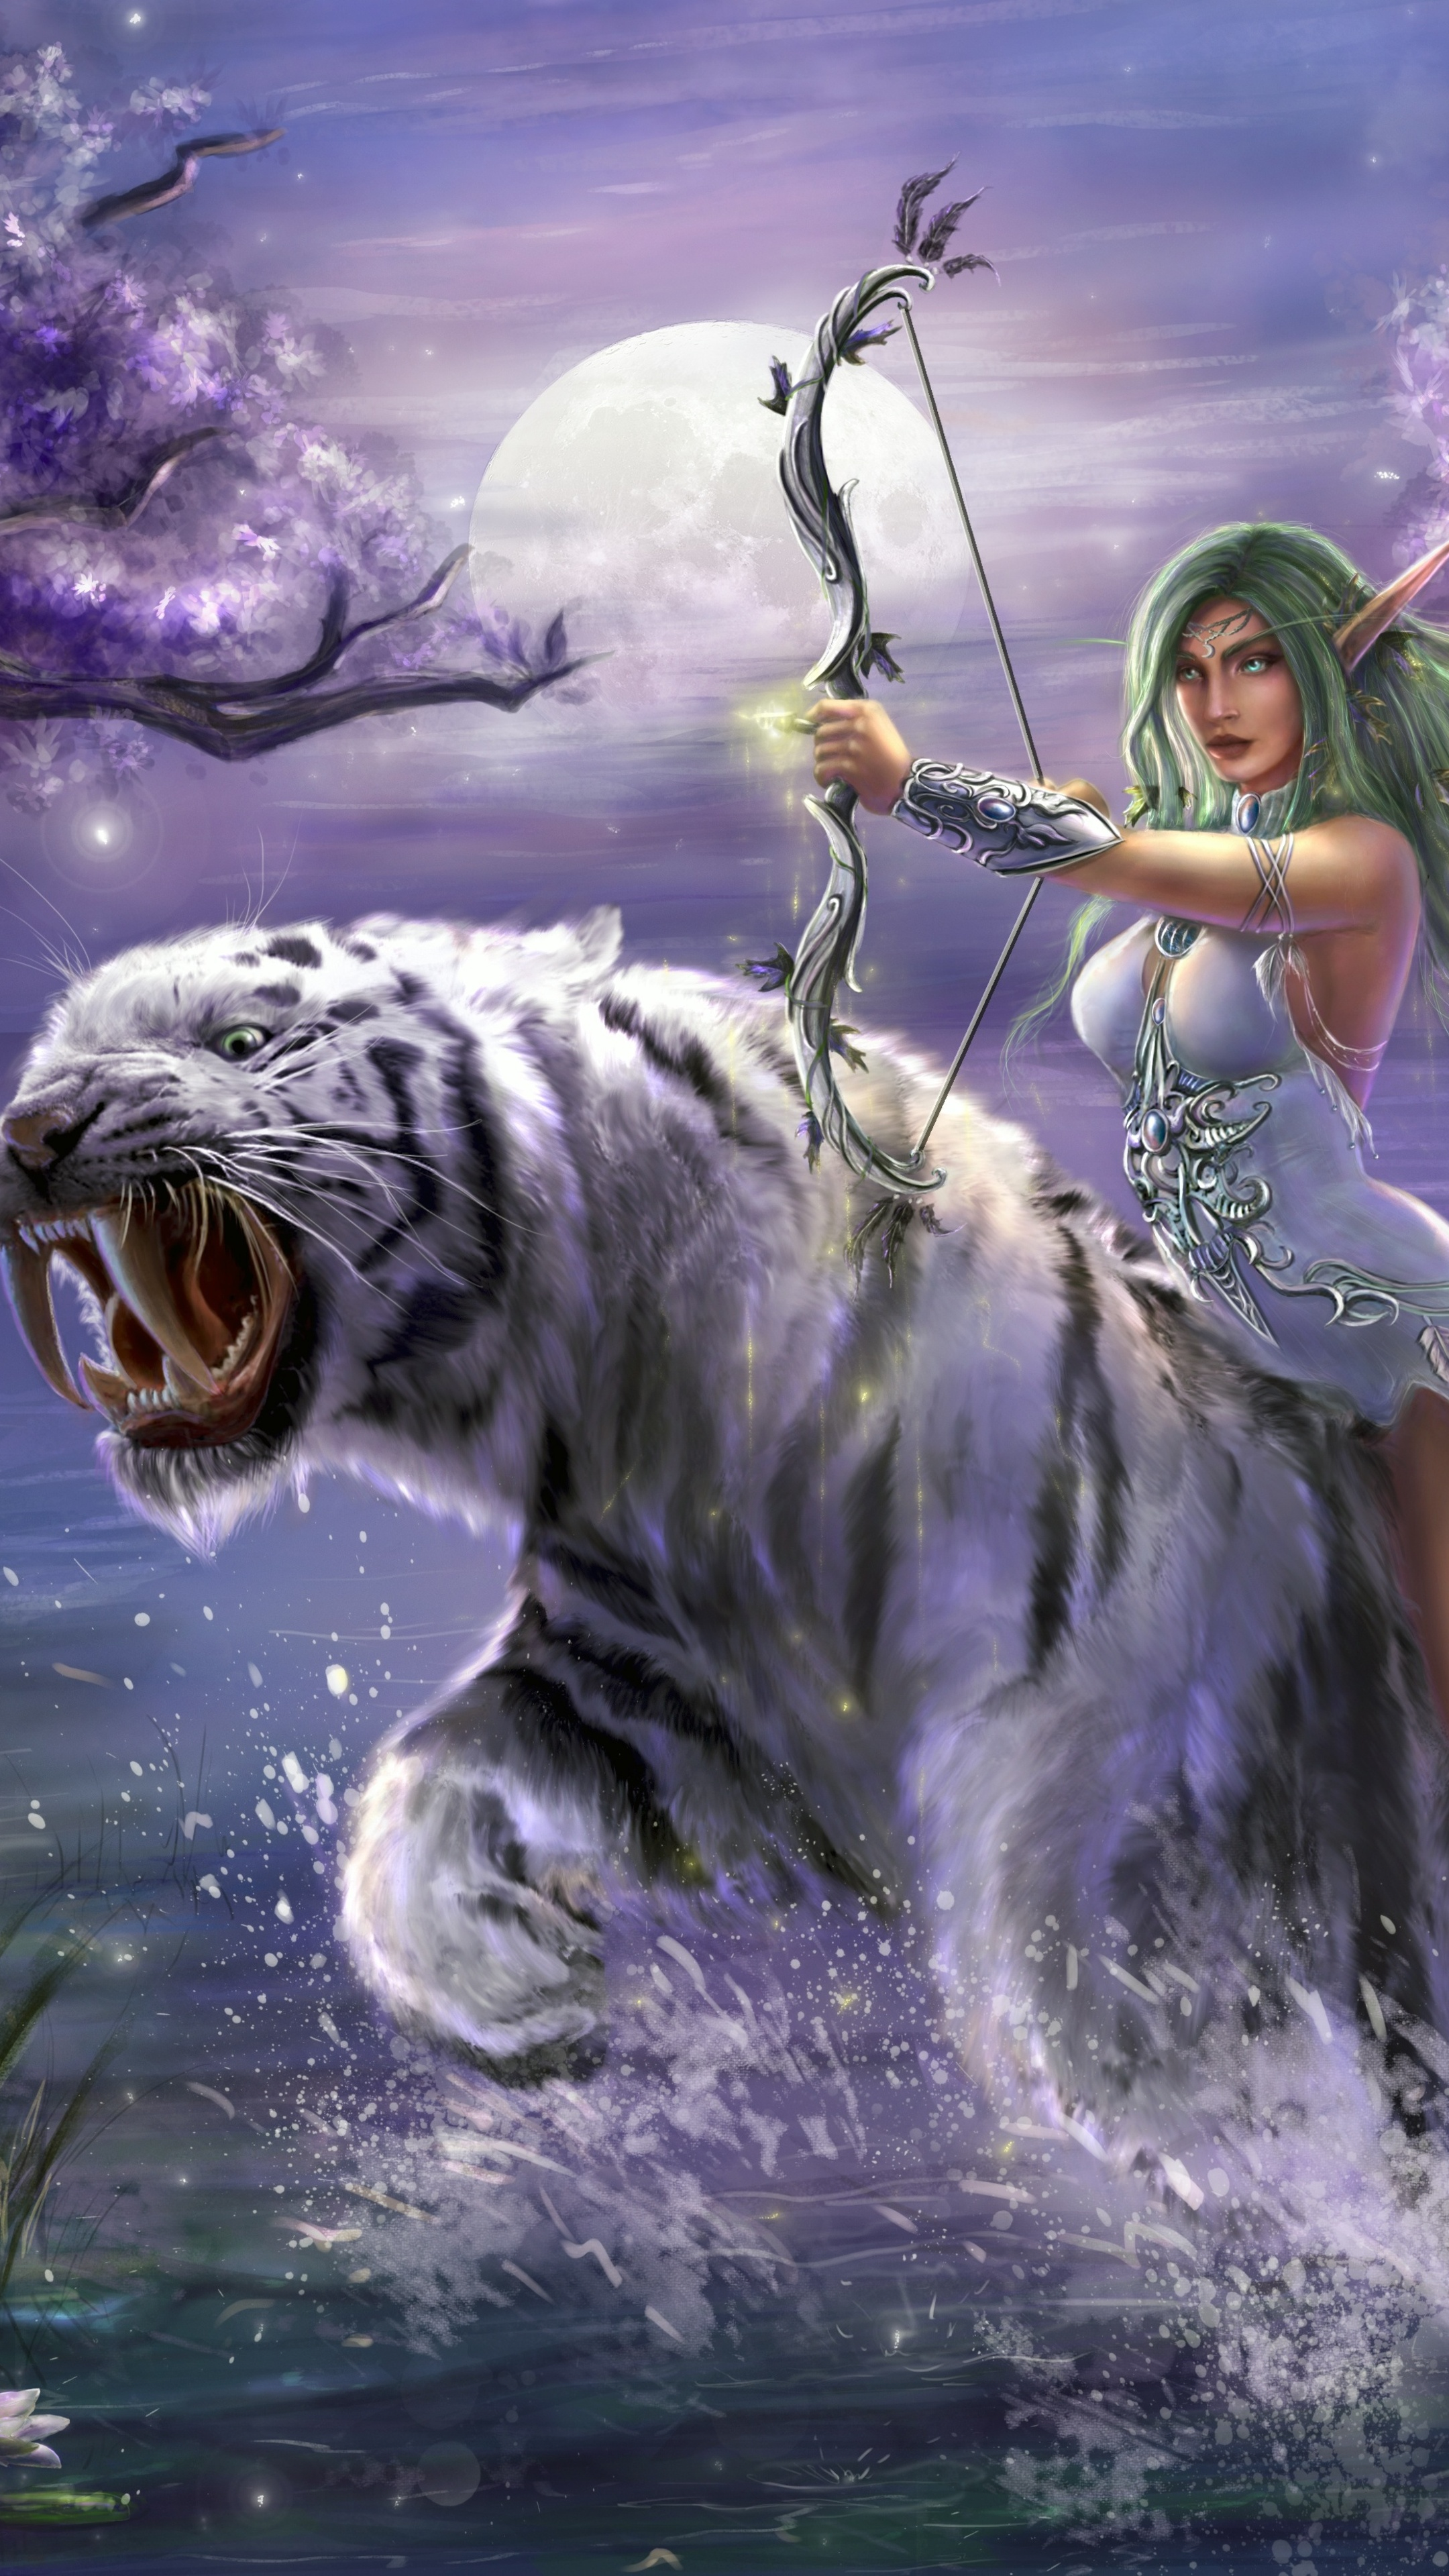 3d Tiger Wallpapers For Desktop 2160x3840 Tyrande Whisperwind World Of Warcraft 5k Sony